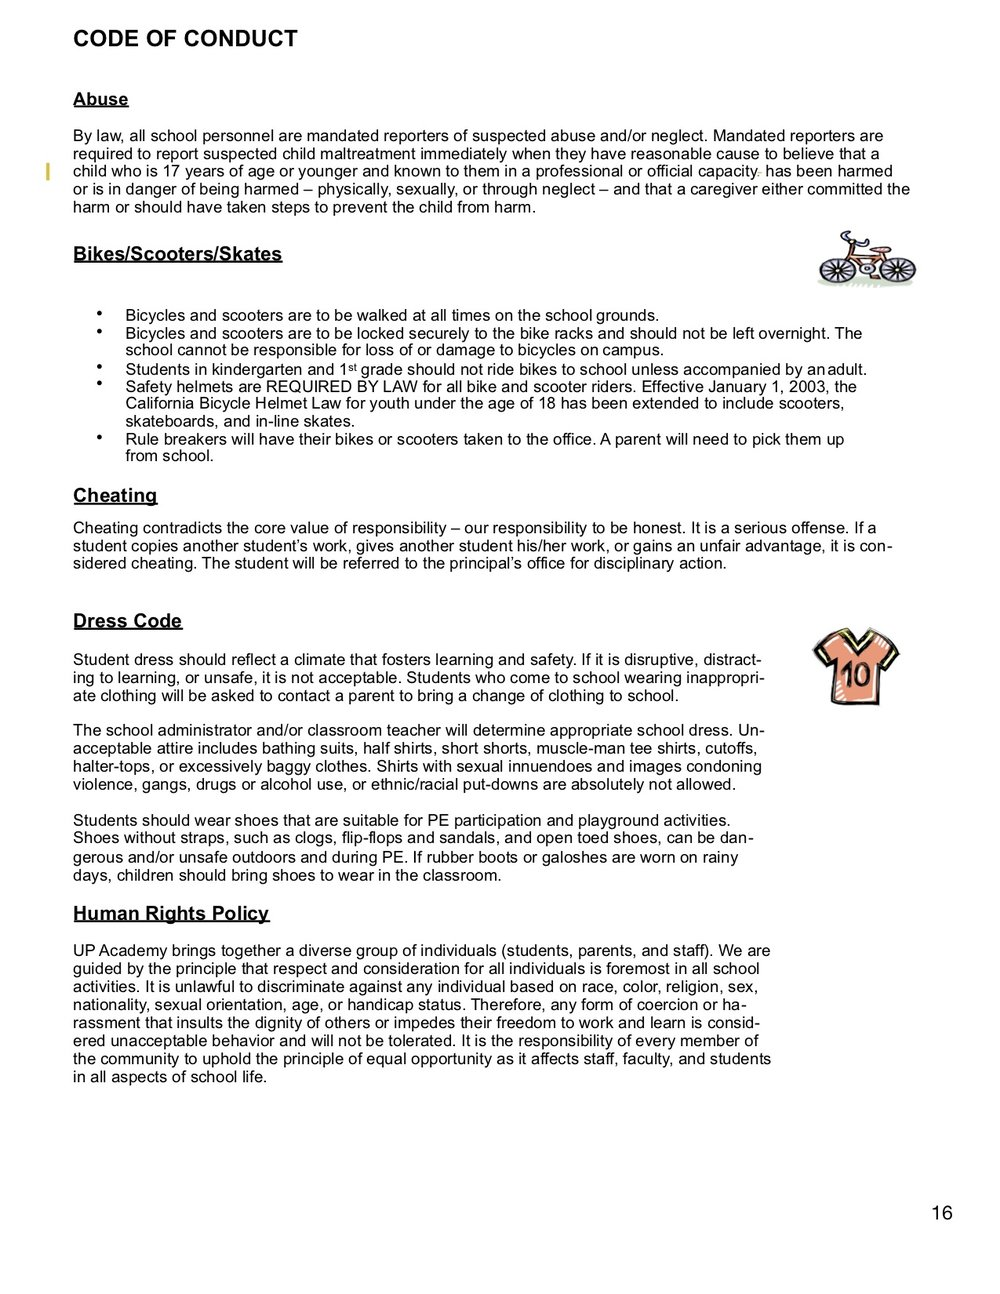 18-19 Parent and Student Handbook V4-15.jpg